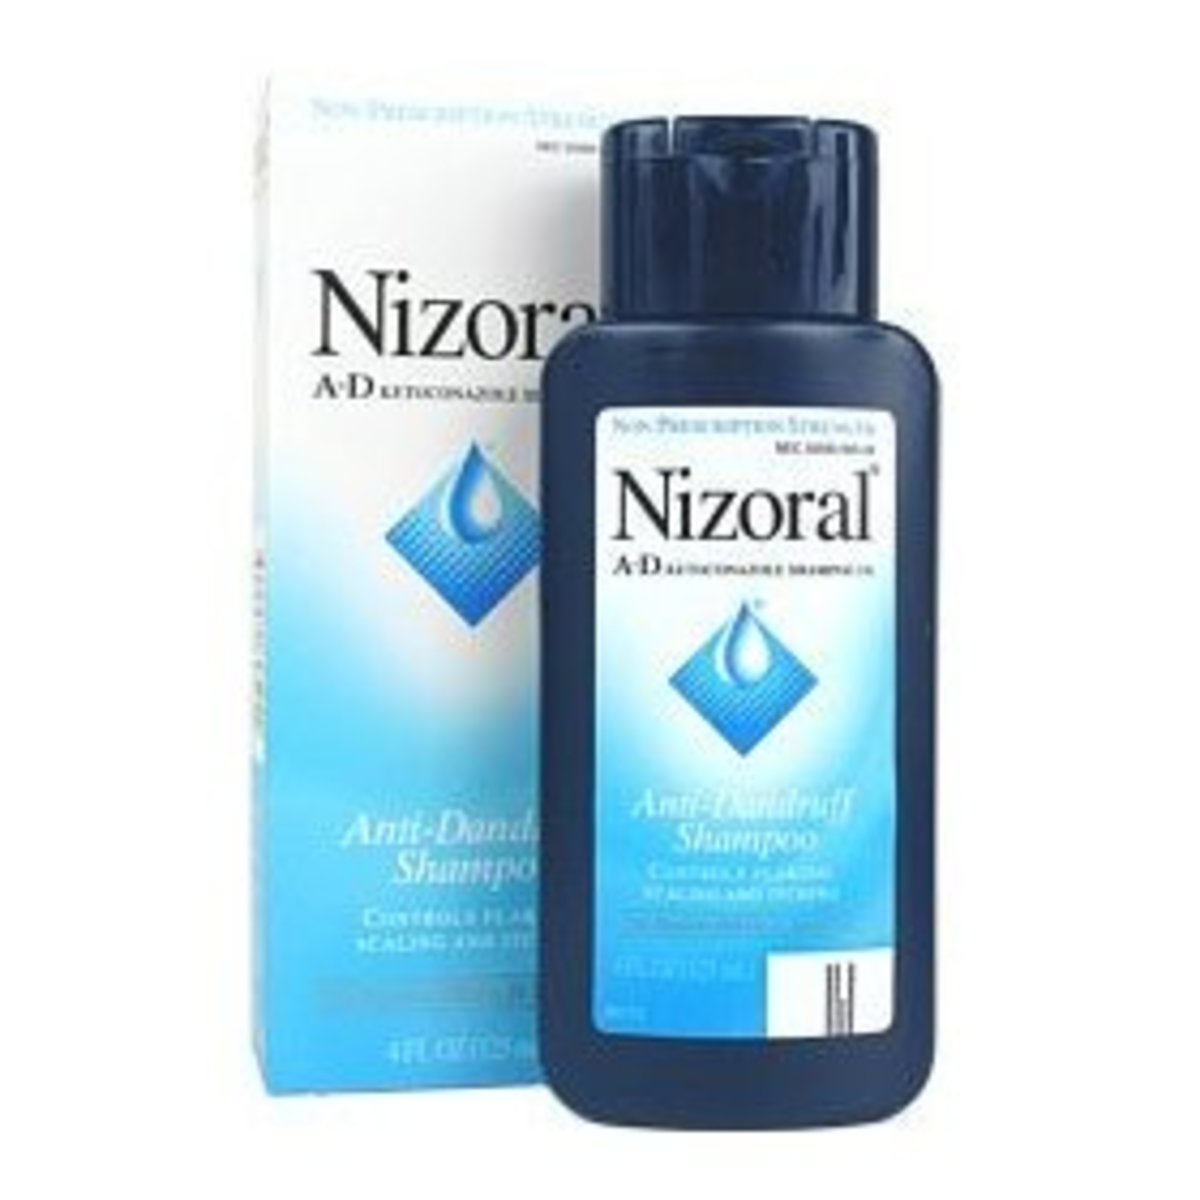 Selsun Blue vs. Head & Shoulders vs. Nizoral: Best Dandruff Shampoo